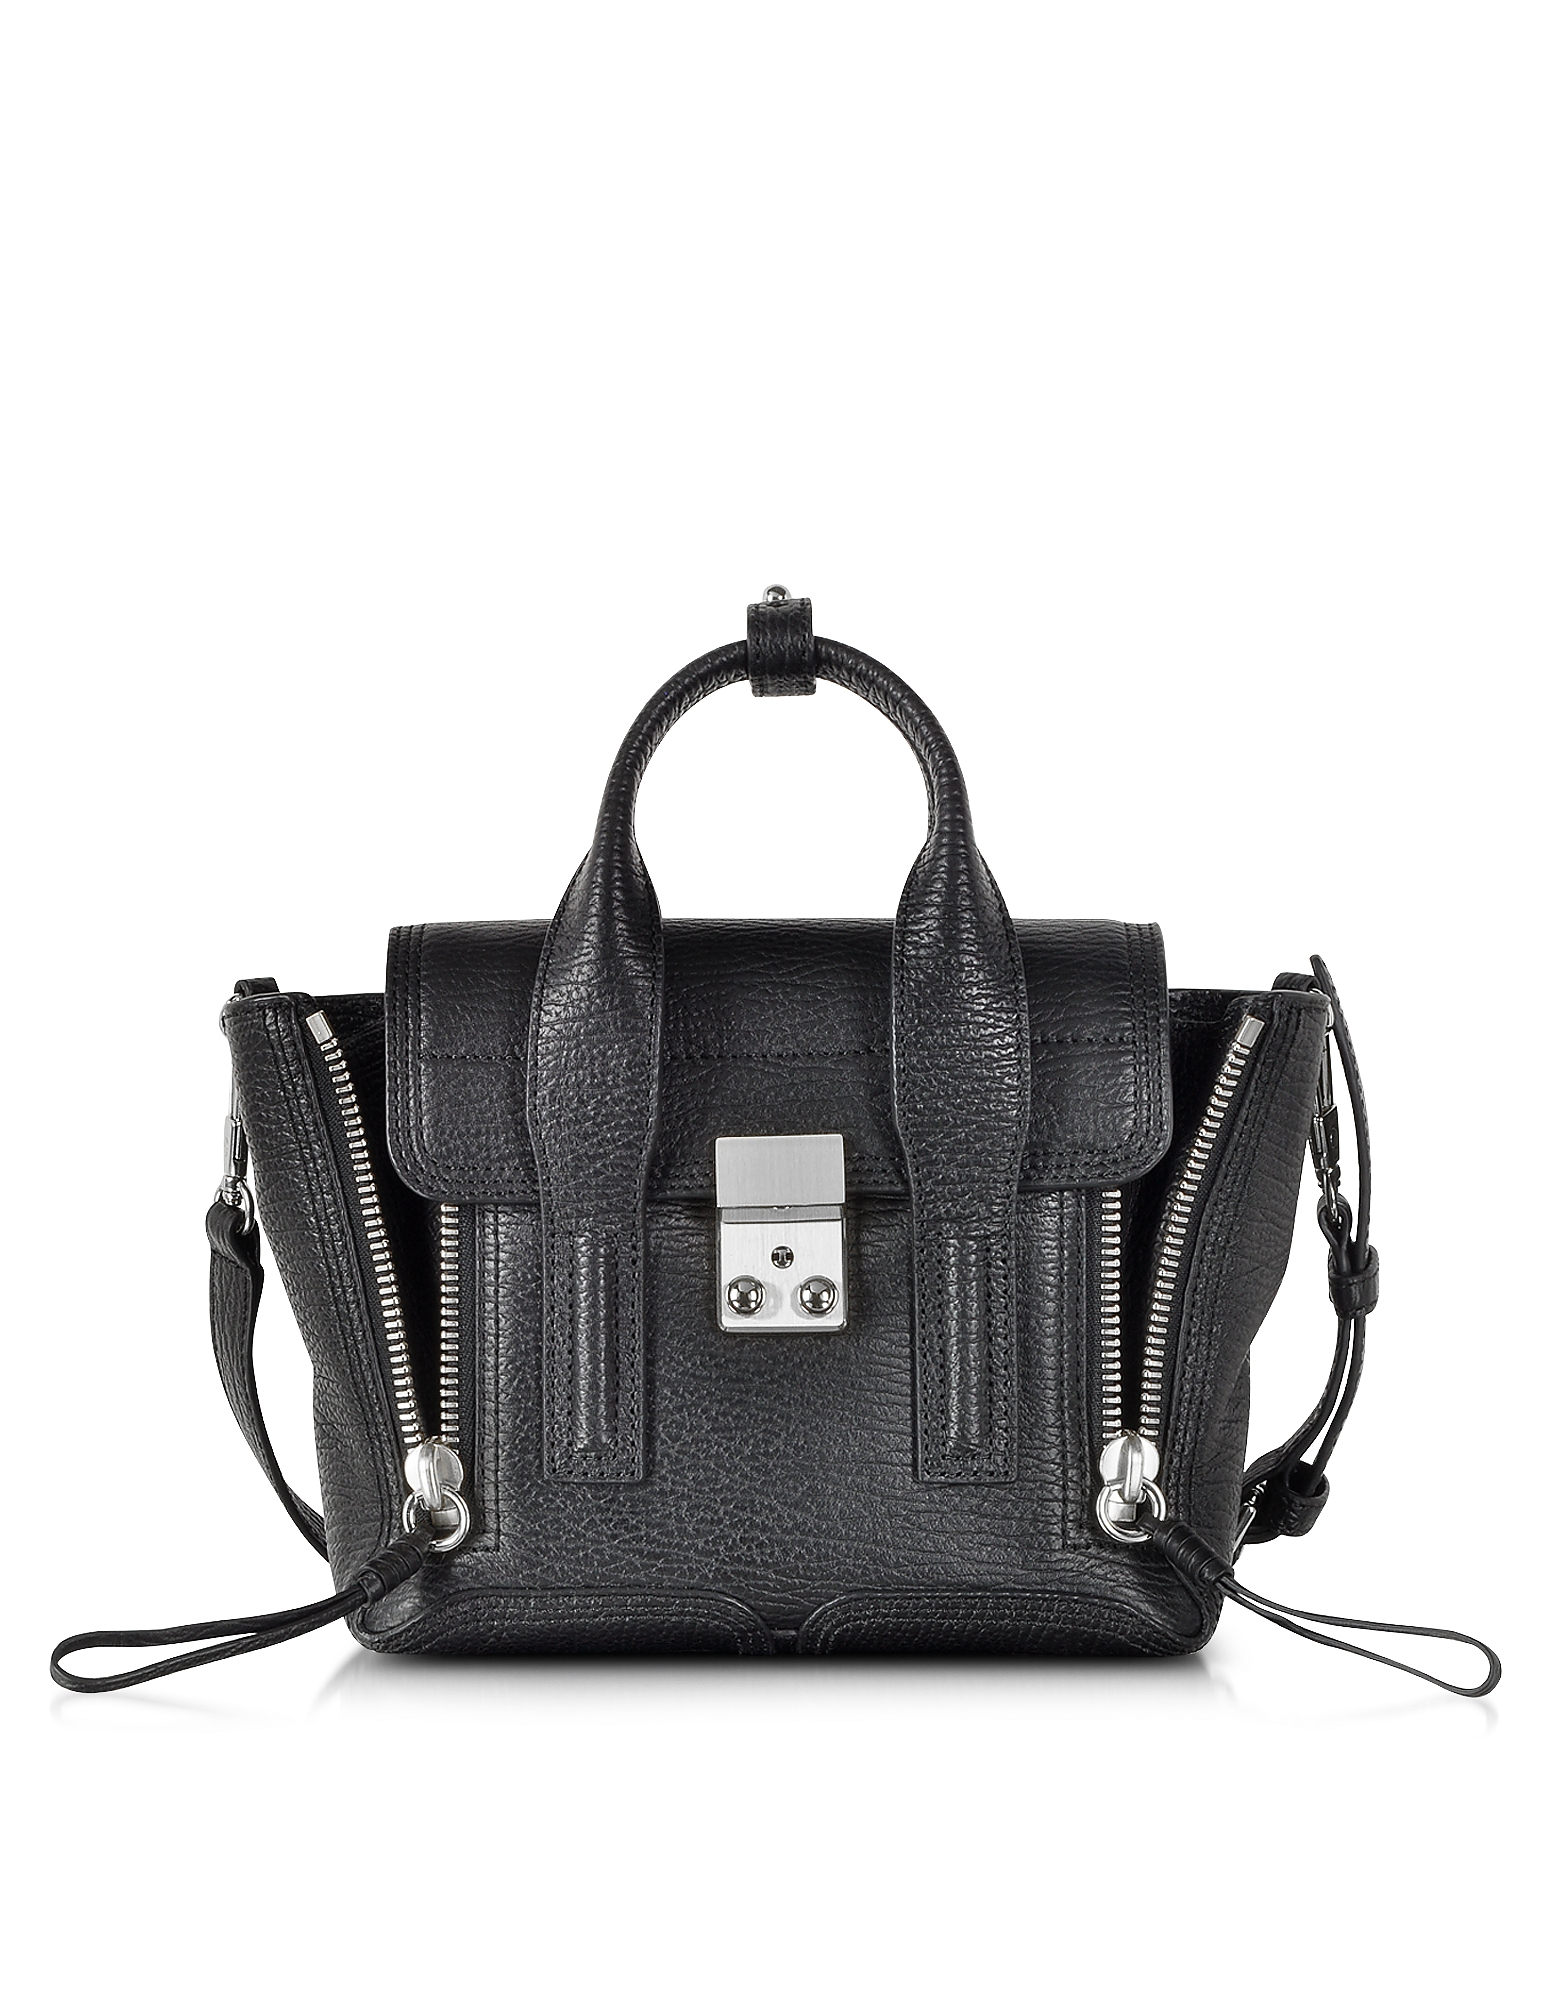 3.1 Phillip Lim Designer Handbags, Black Pashli Mini Satchel (888824187233 Luggage & Bags) photo